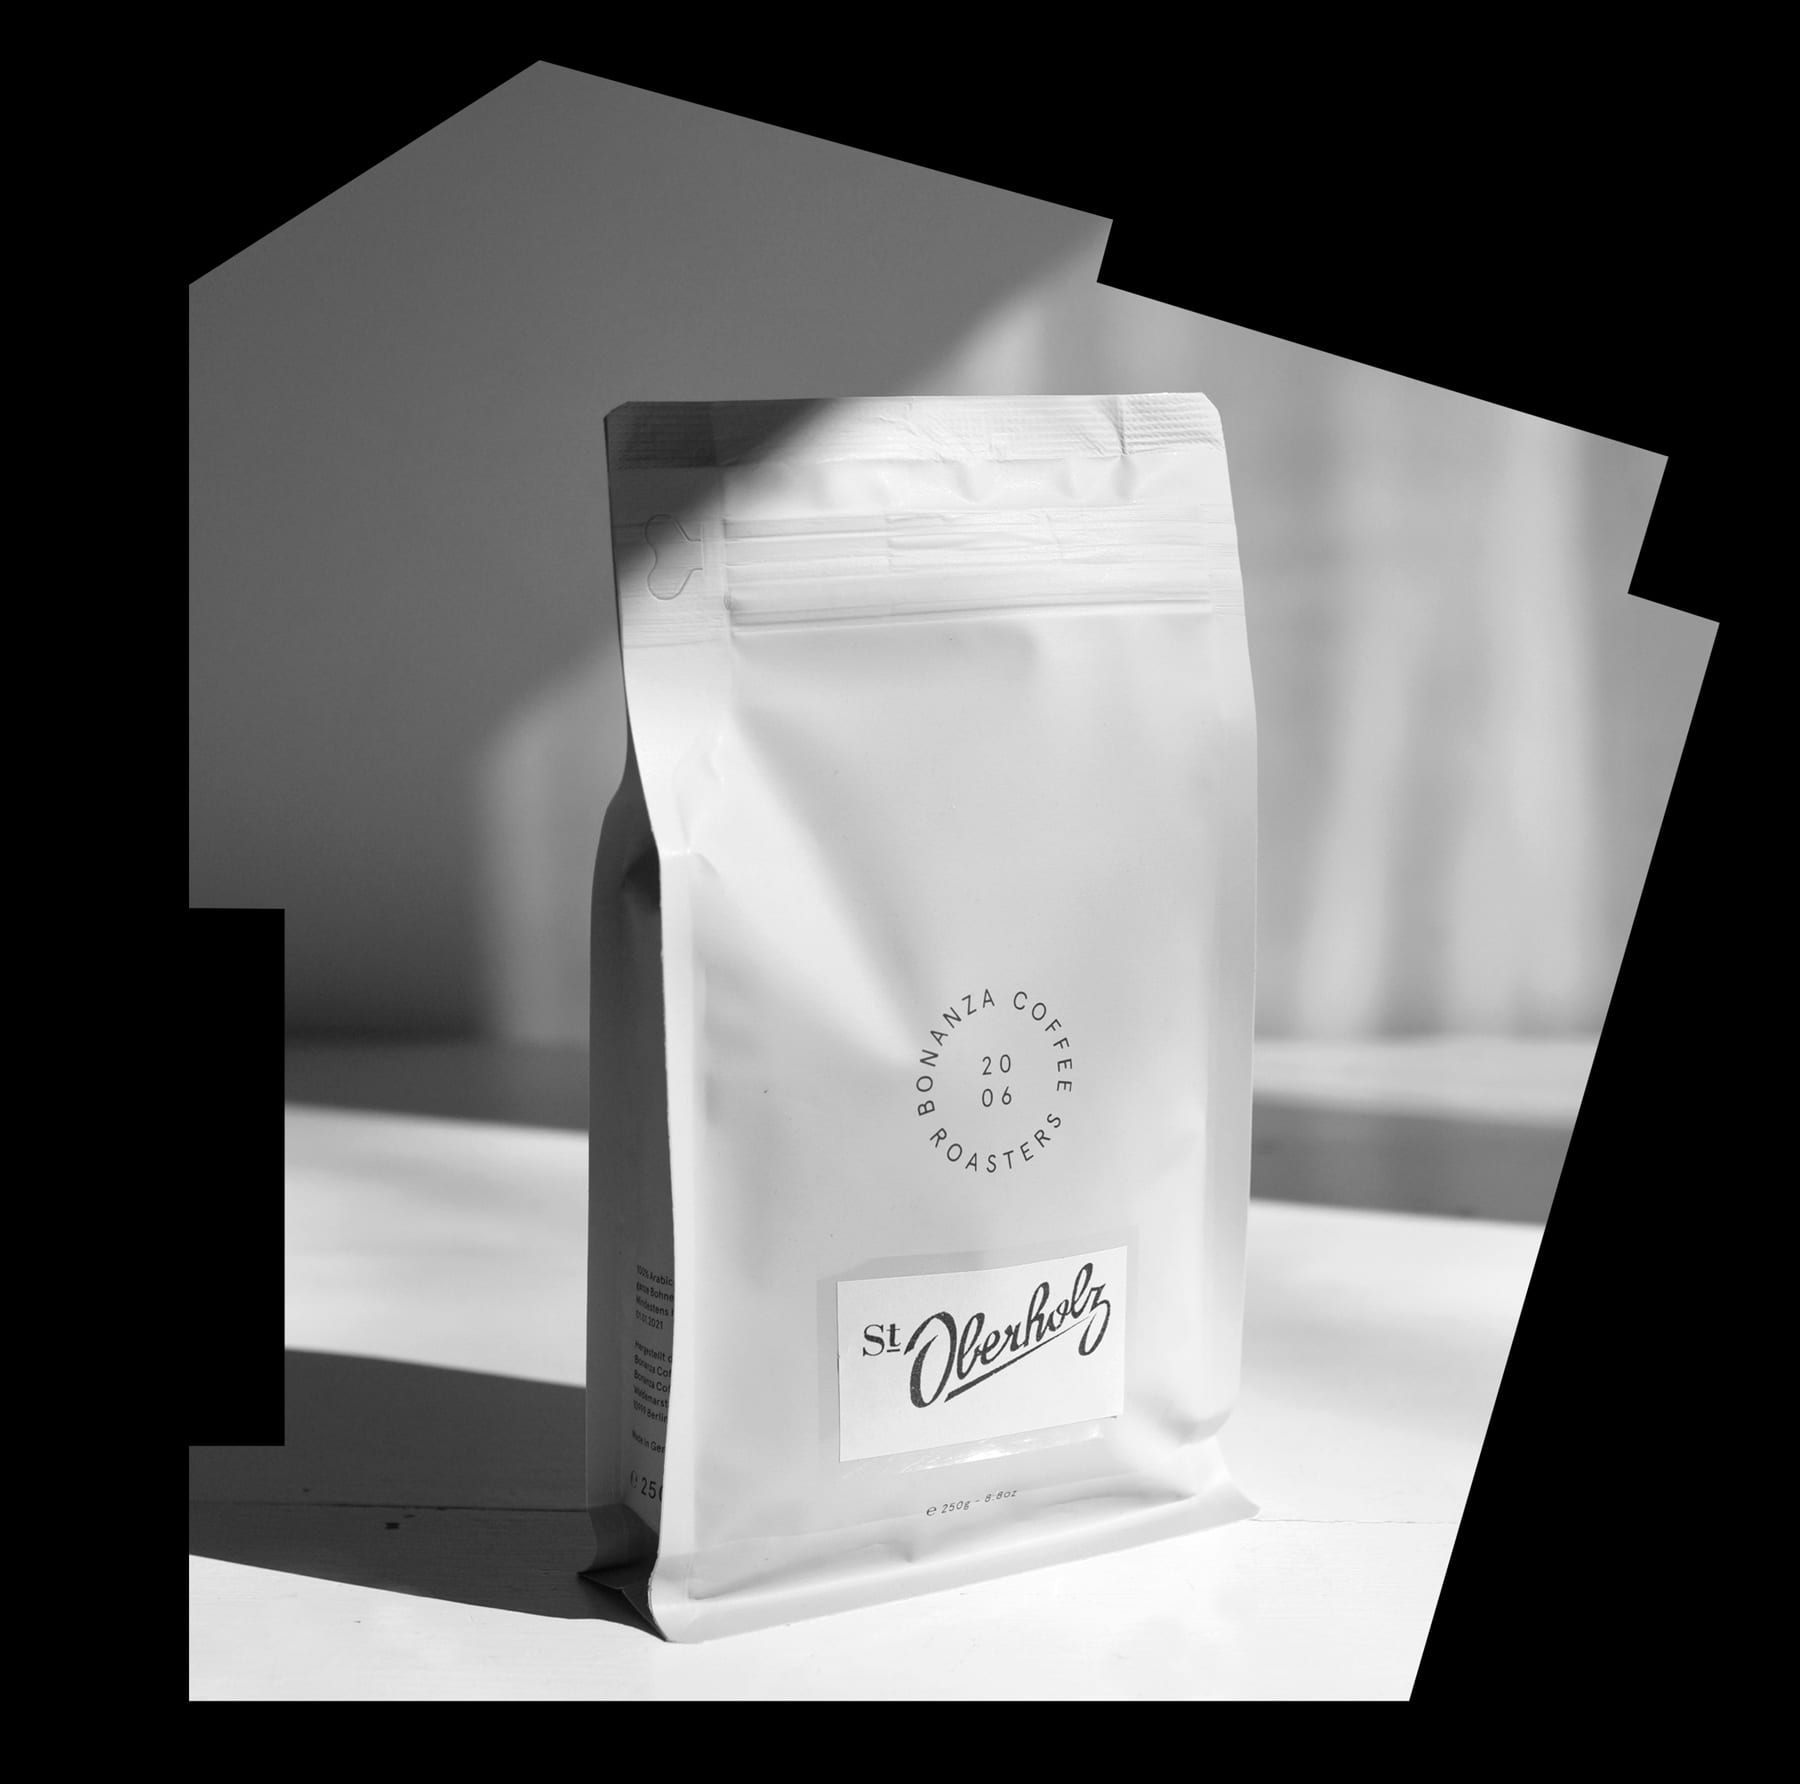 Get our St. Oberholz Signature Roast to enjoy at home